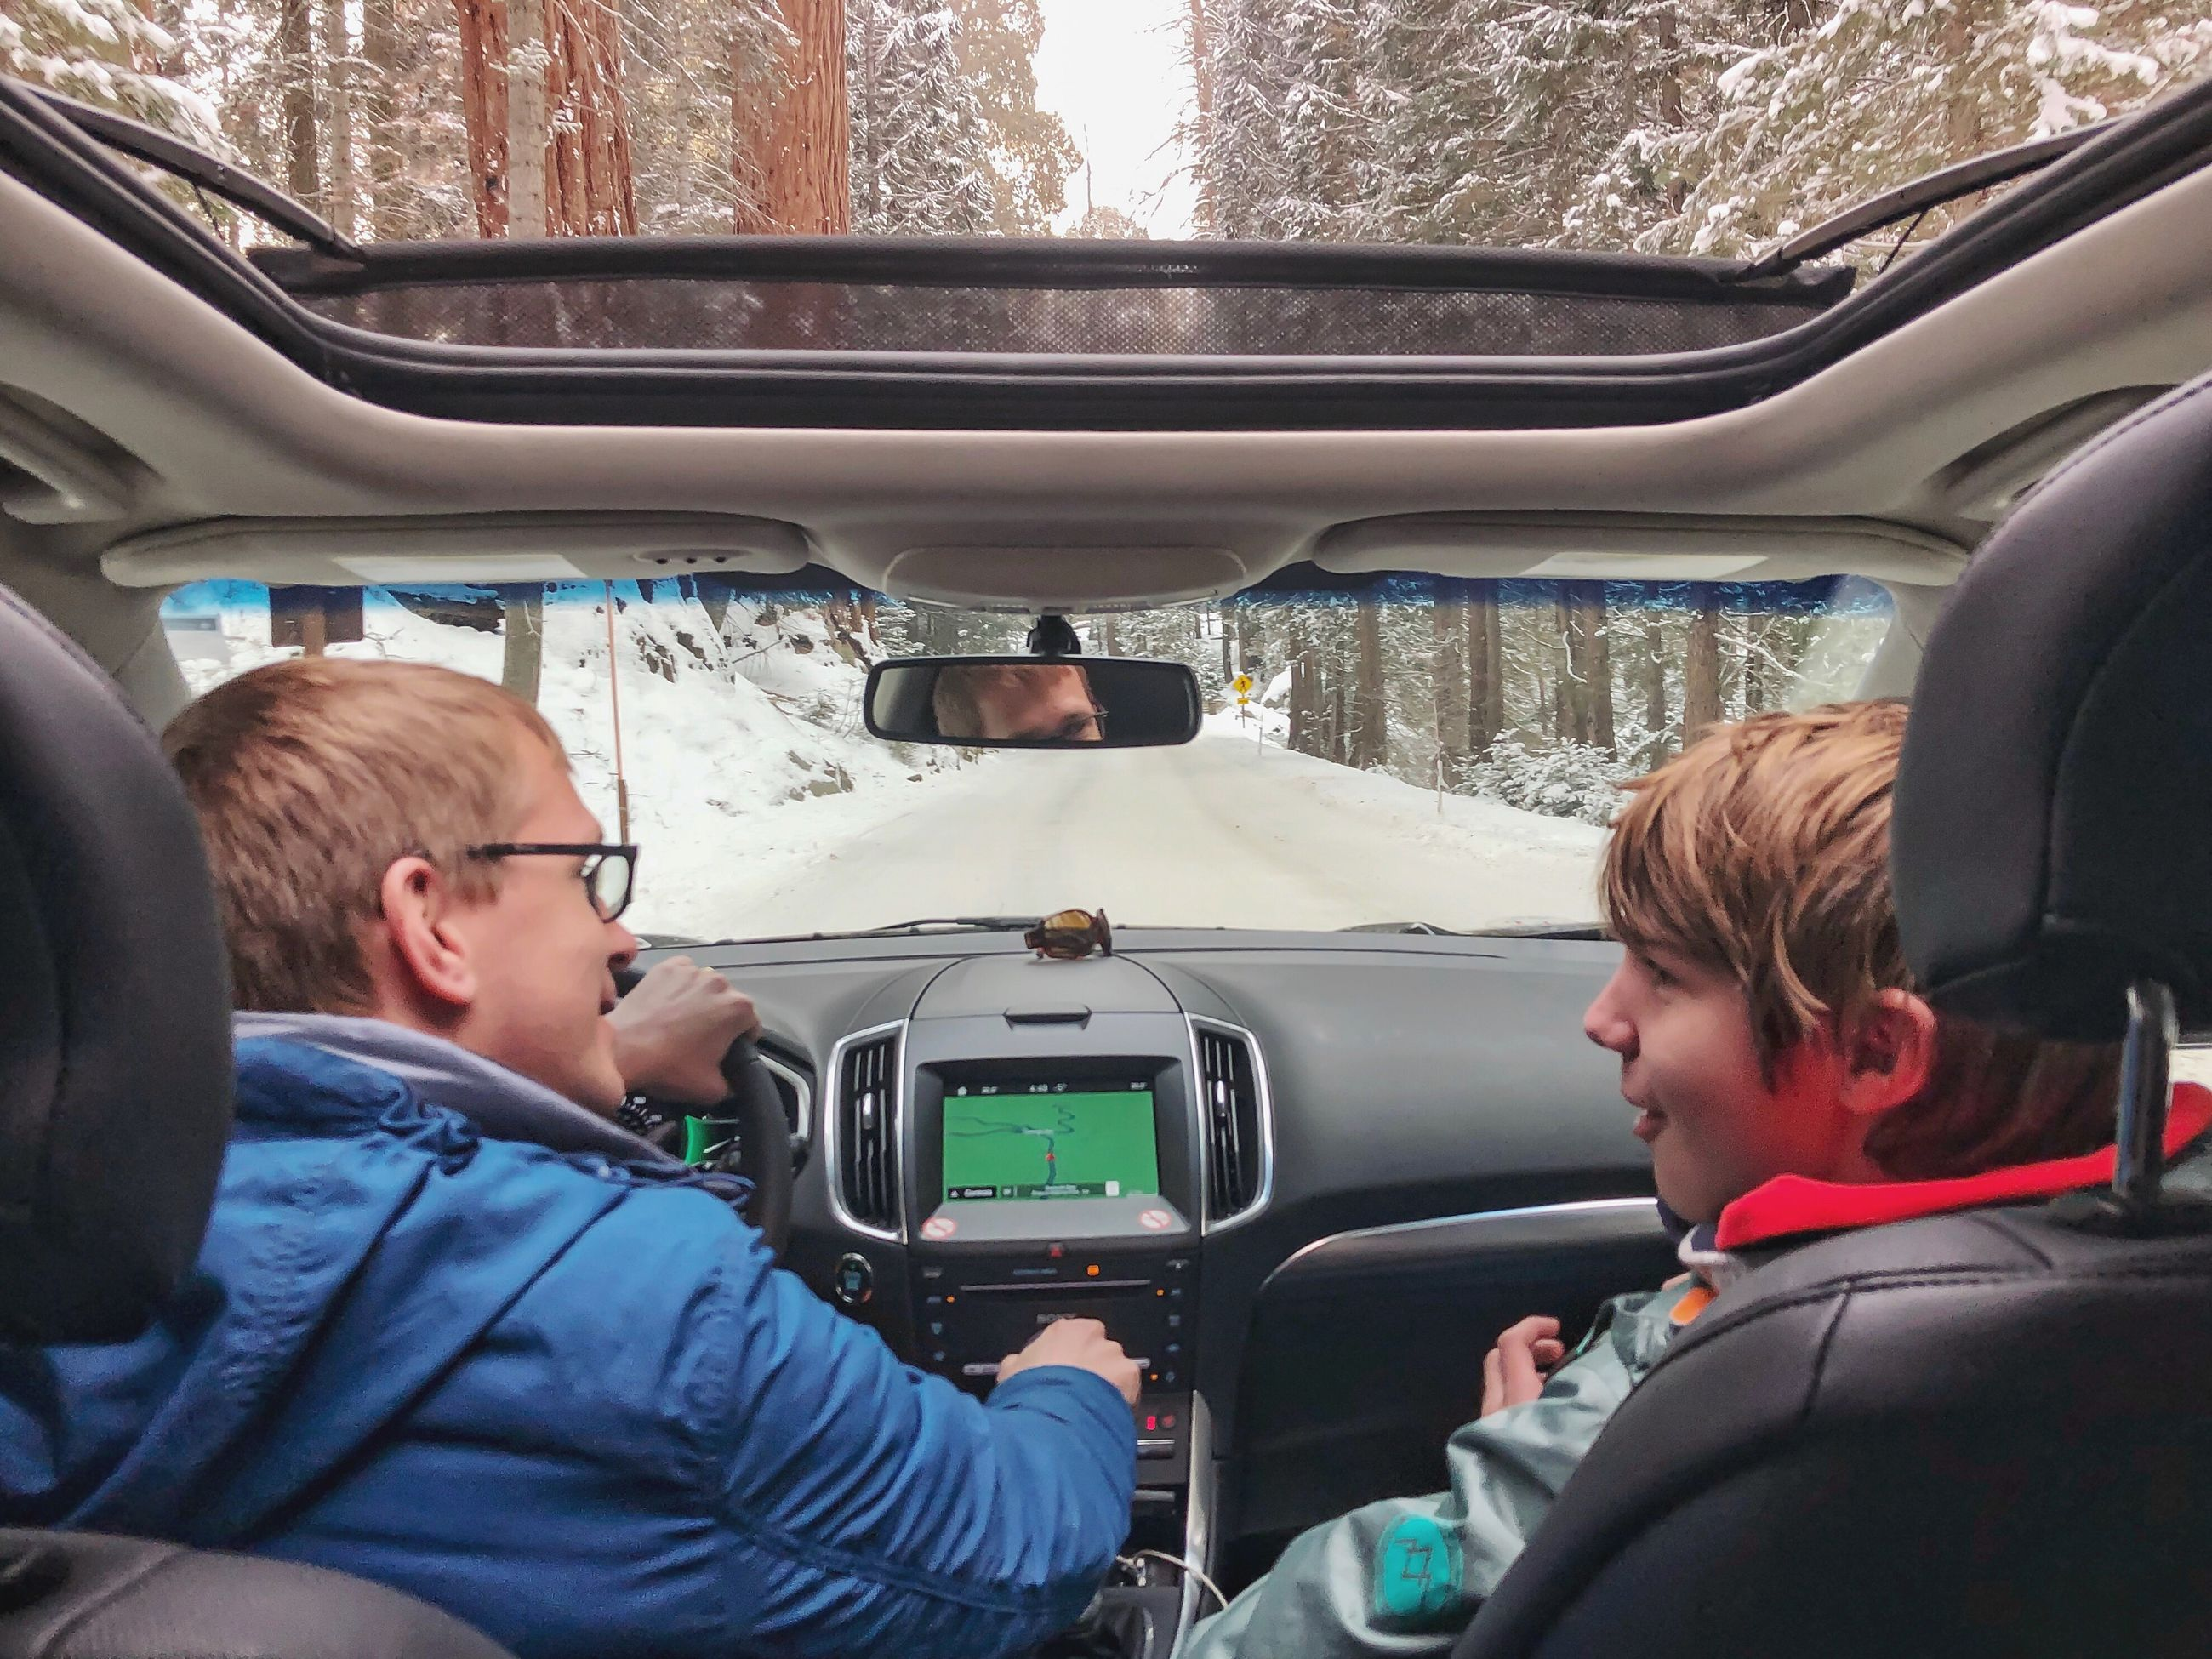 mode of transportation, men, transportation, vehicle interior, real people, car, males, two people, sitting, travel, land vehicle, boys, togetherness, motor vehicle, portrait, car interior, child, childhood, glass - material